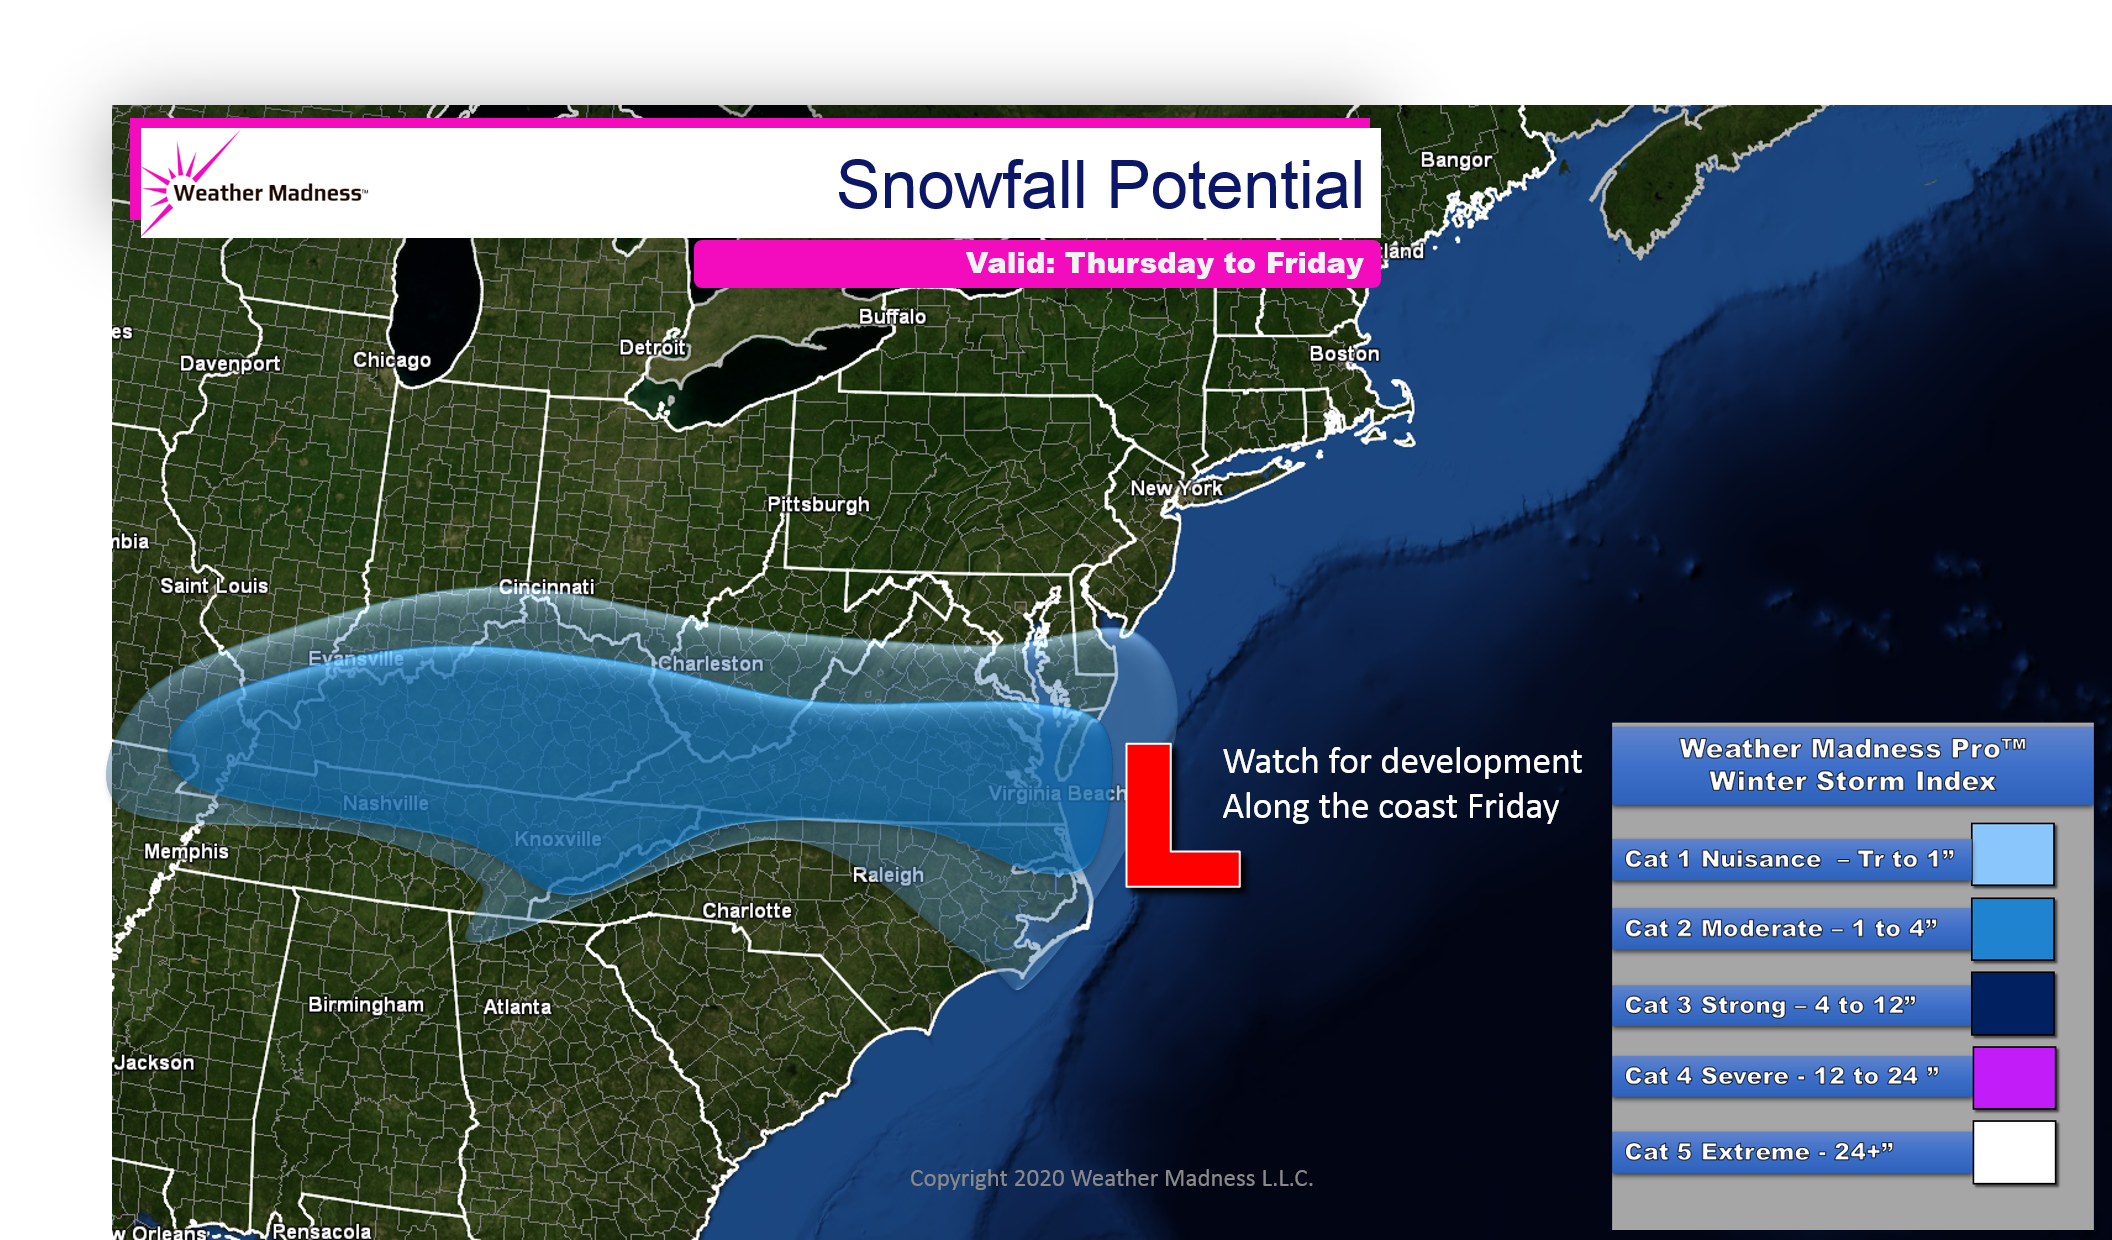 Snow Map for the Storm Thursday to Friday